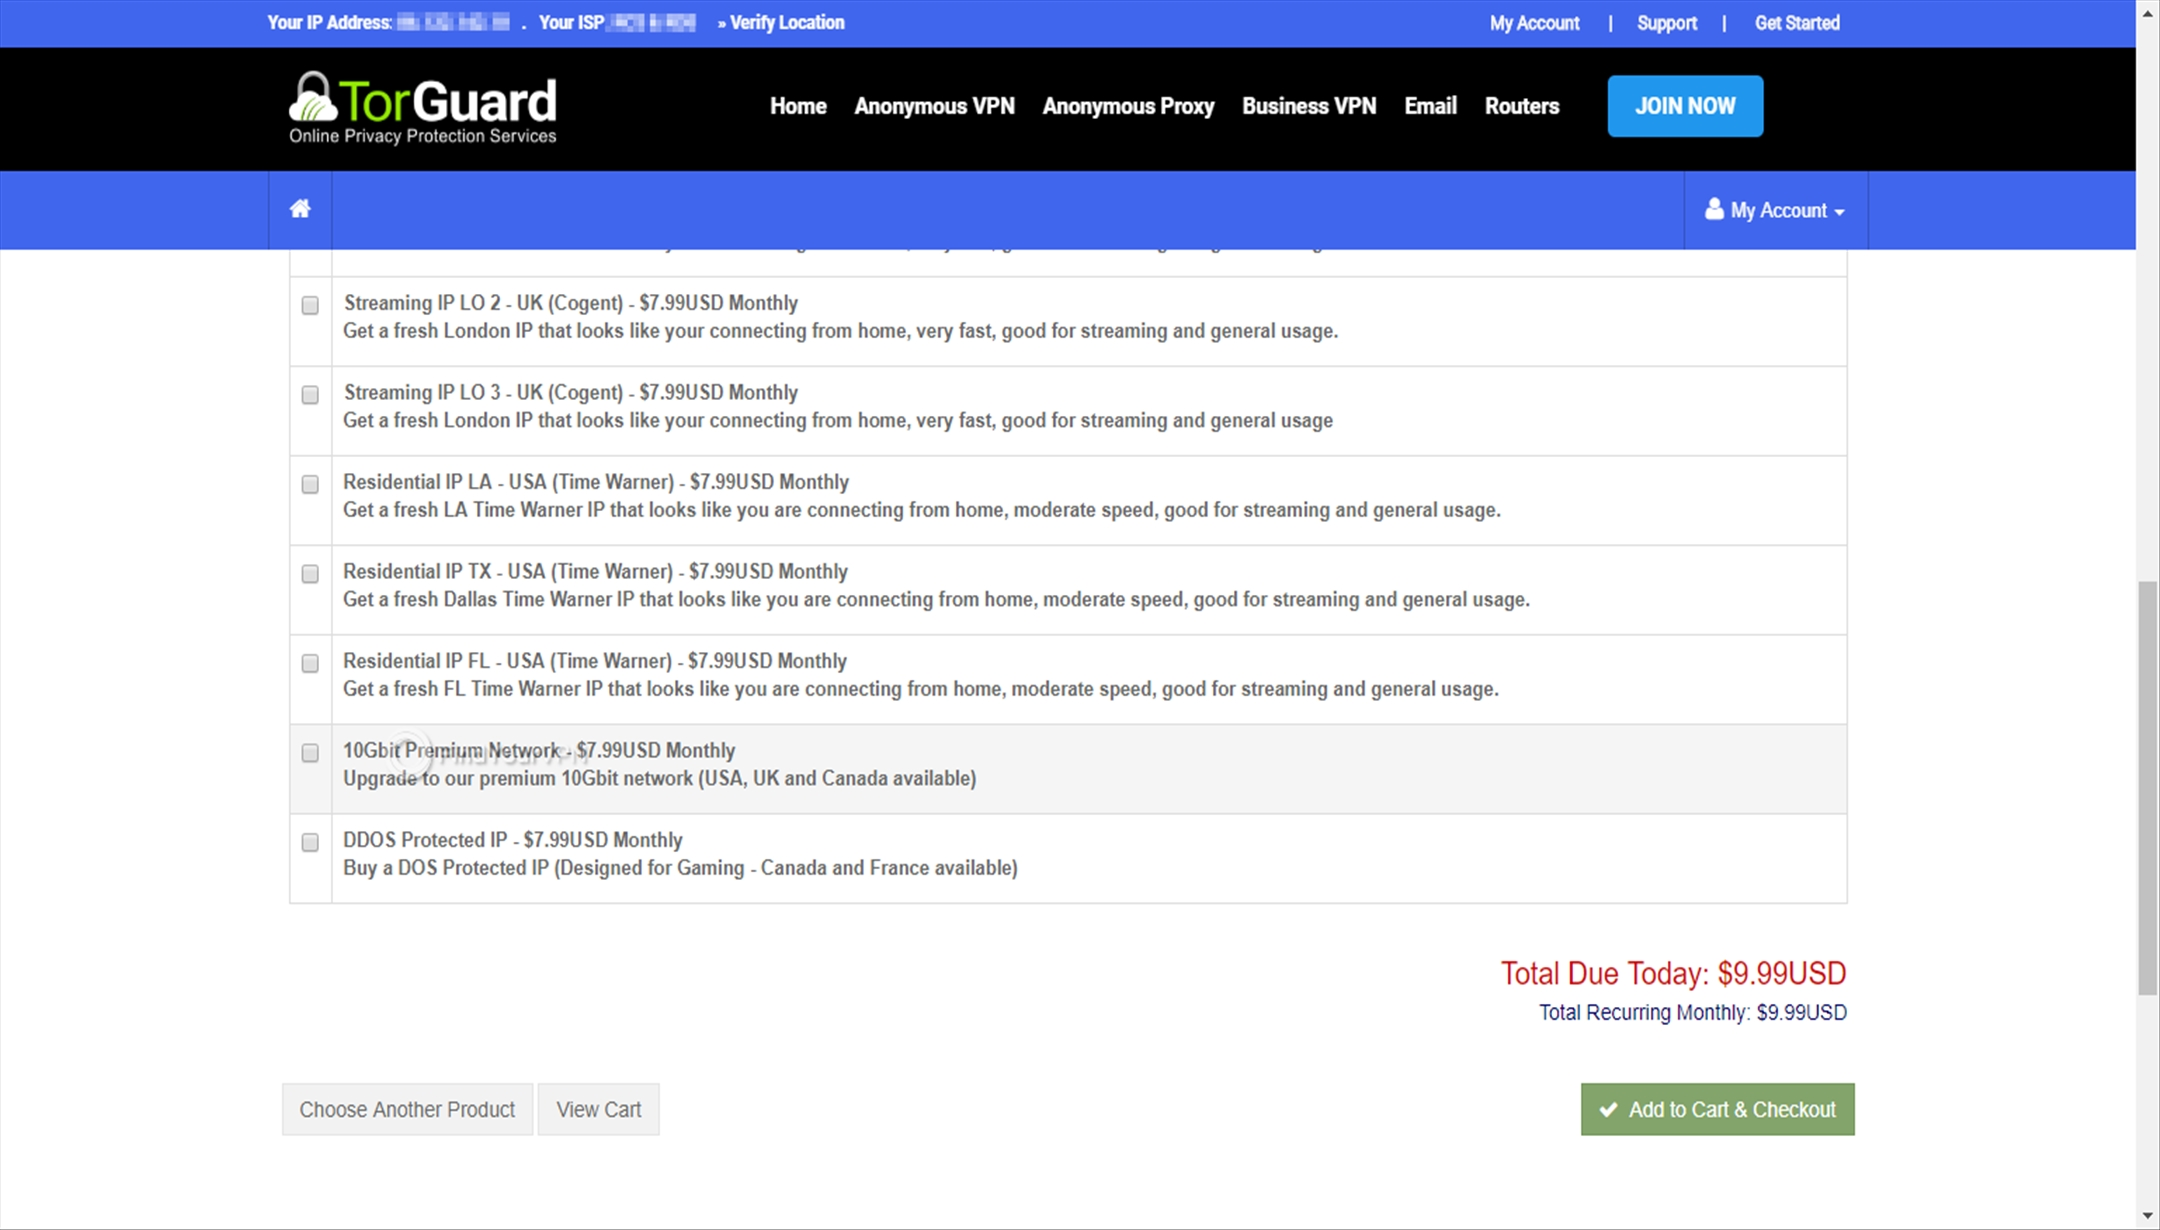 Configure additional TorGuard subscription options